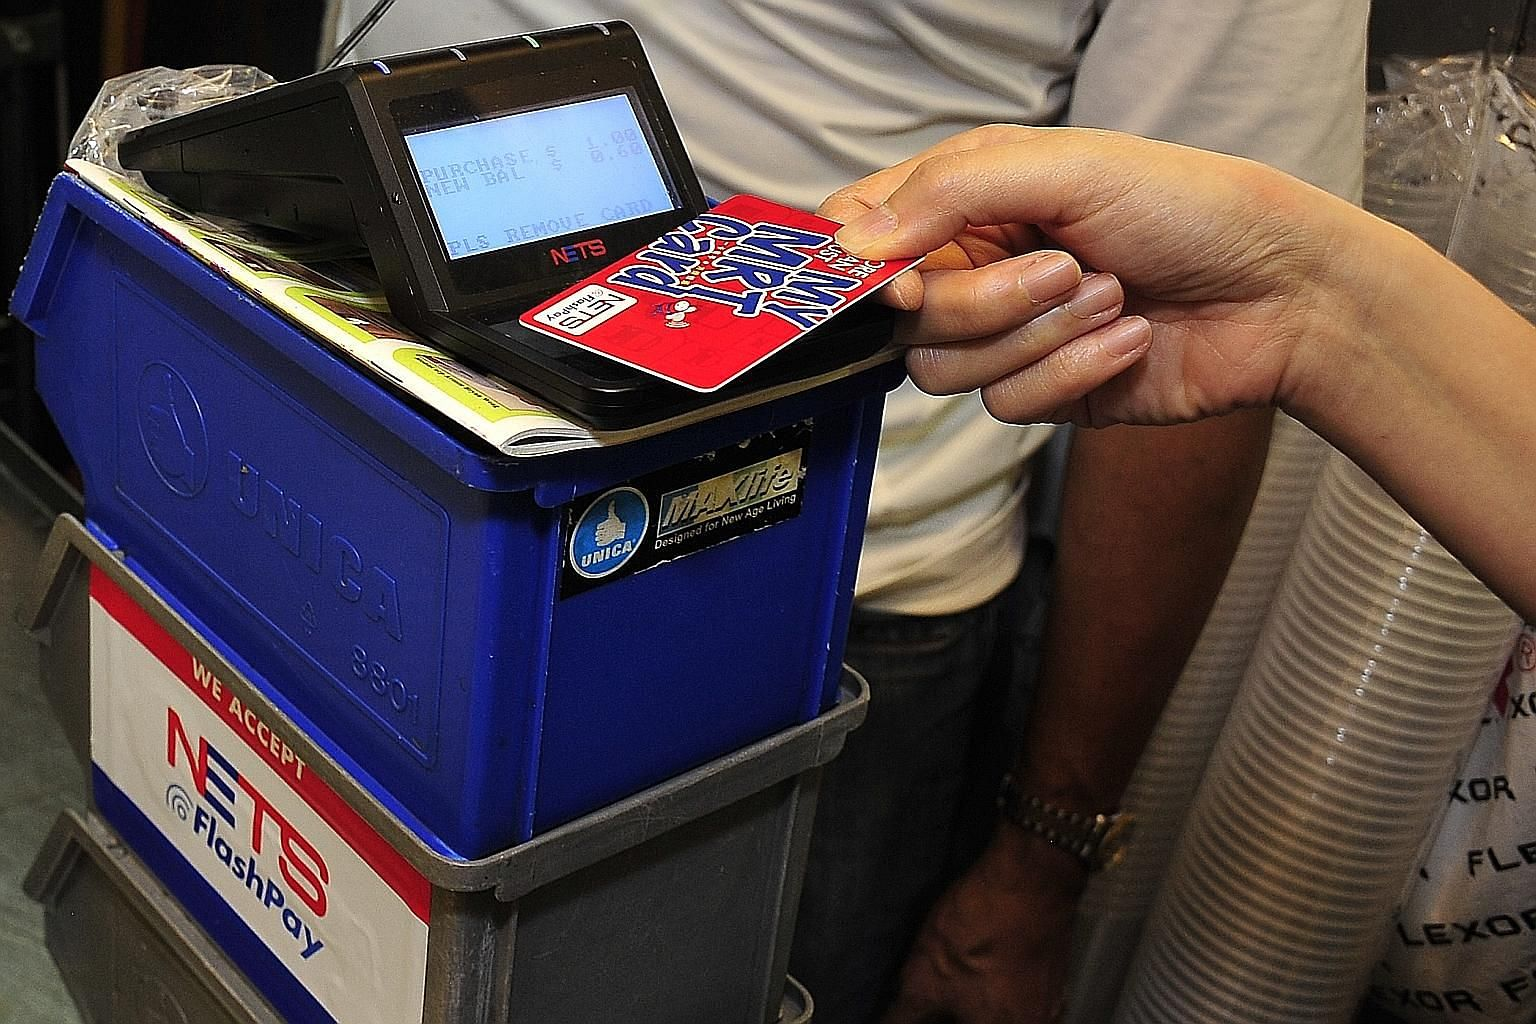 A stall offering cashless payment often has to operate several different payment devices, creating a cost burden. To offset costs, the National Environment Agency and Spring Singapore provide grants for digital service solutions.